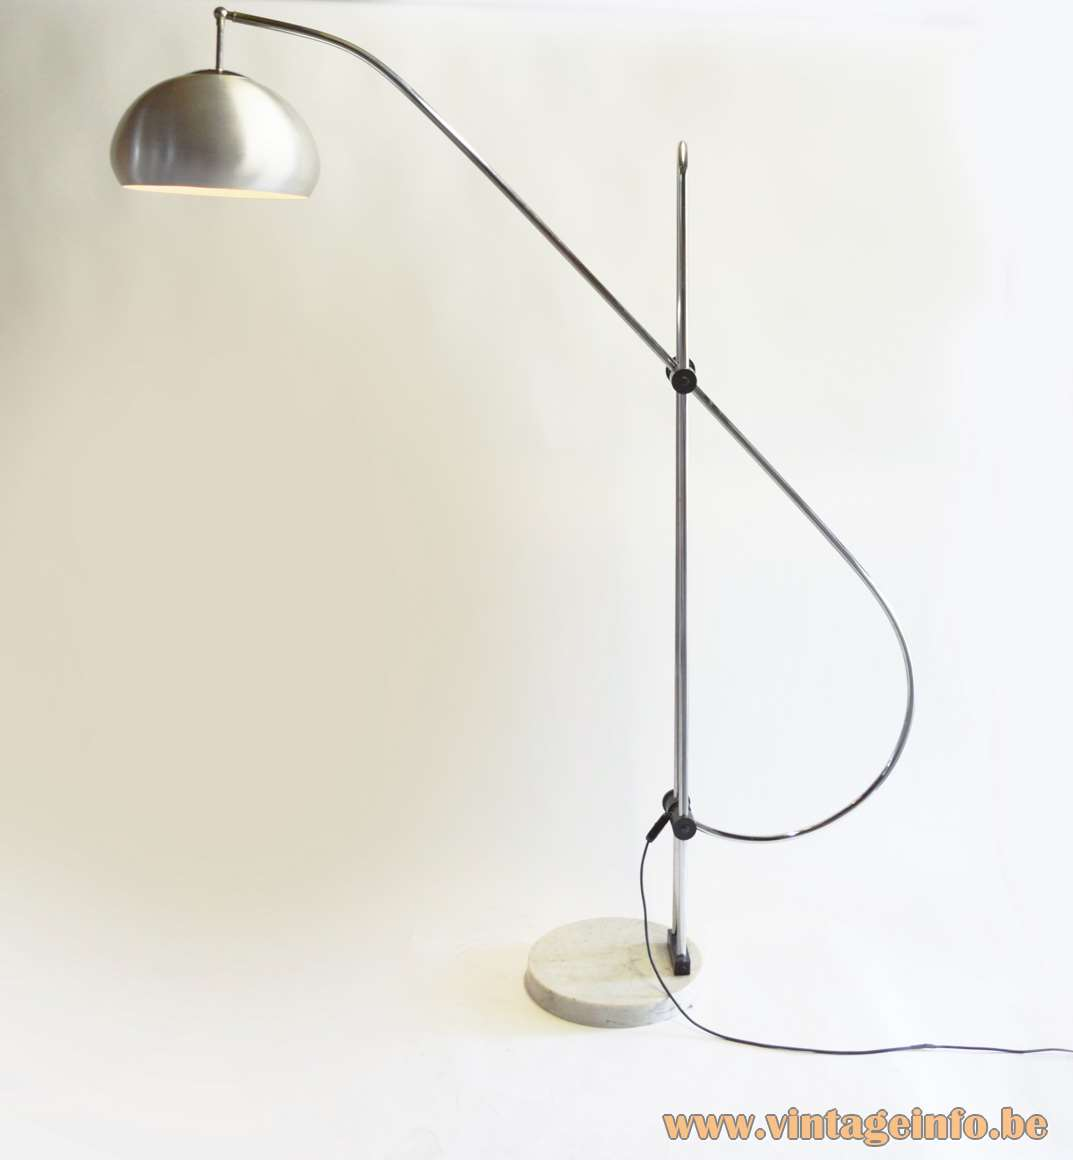 1960s Arc Floor Lamp Vintage Info All About Vintage